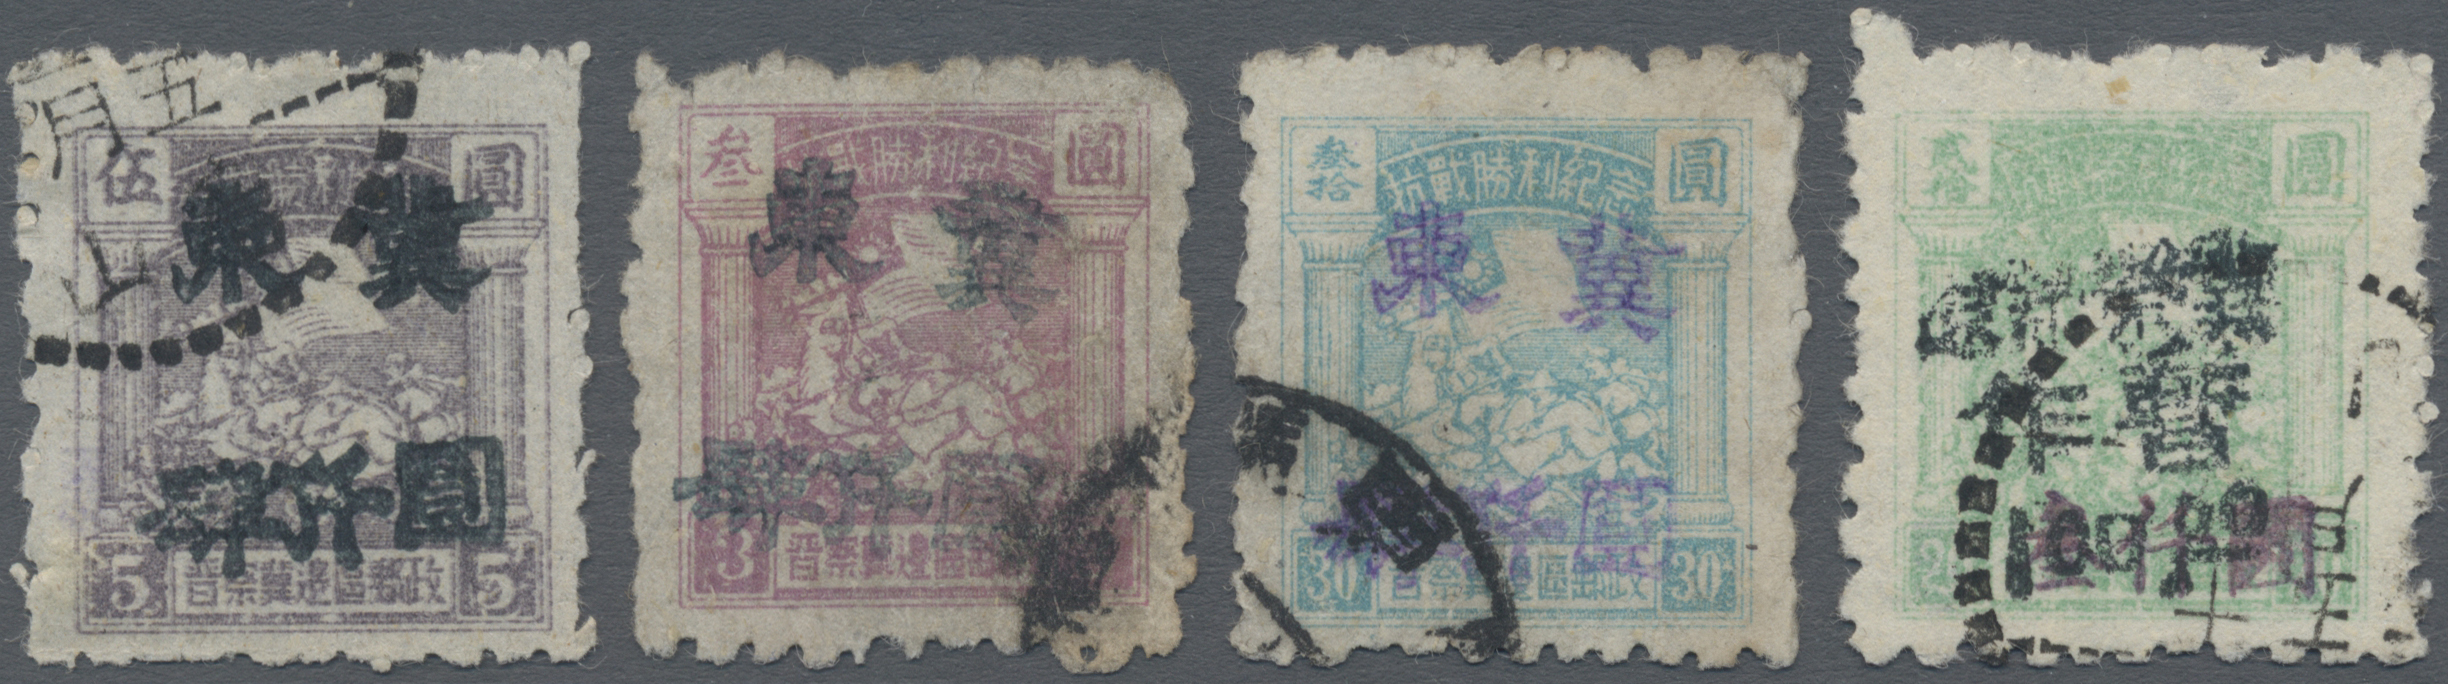 Lot 05513 - China - Volksrepublik - Provinzen  -  Auktionshaus Christoph Gärtner GmbH & Co. KG Sale #45- Special Auction China